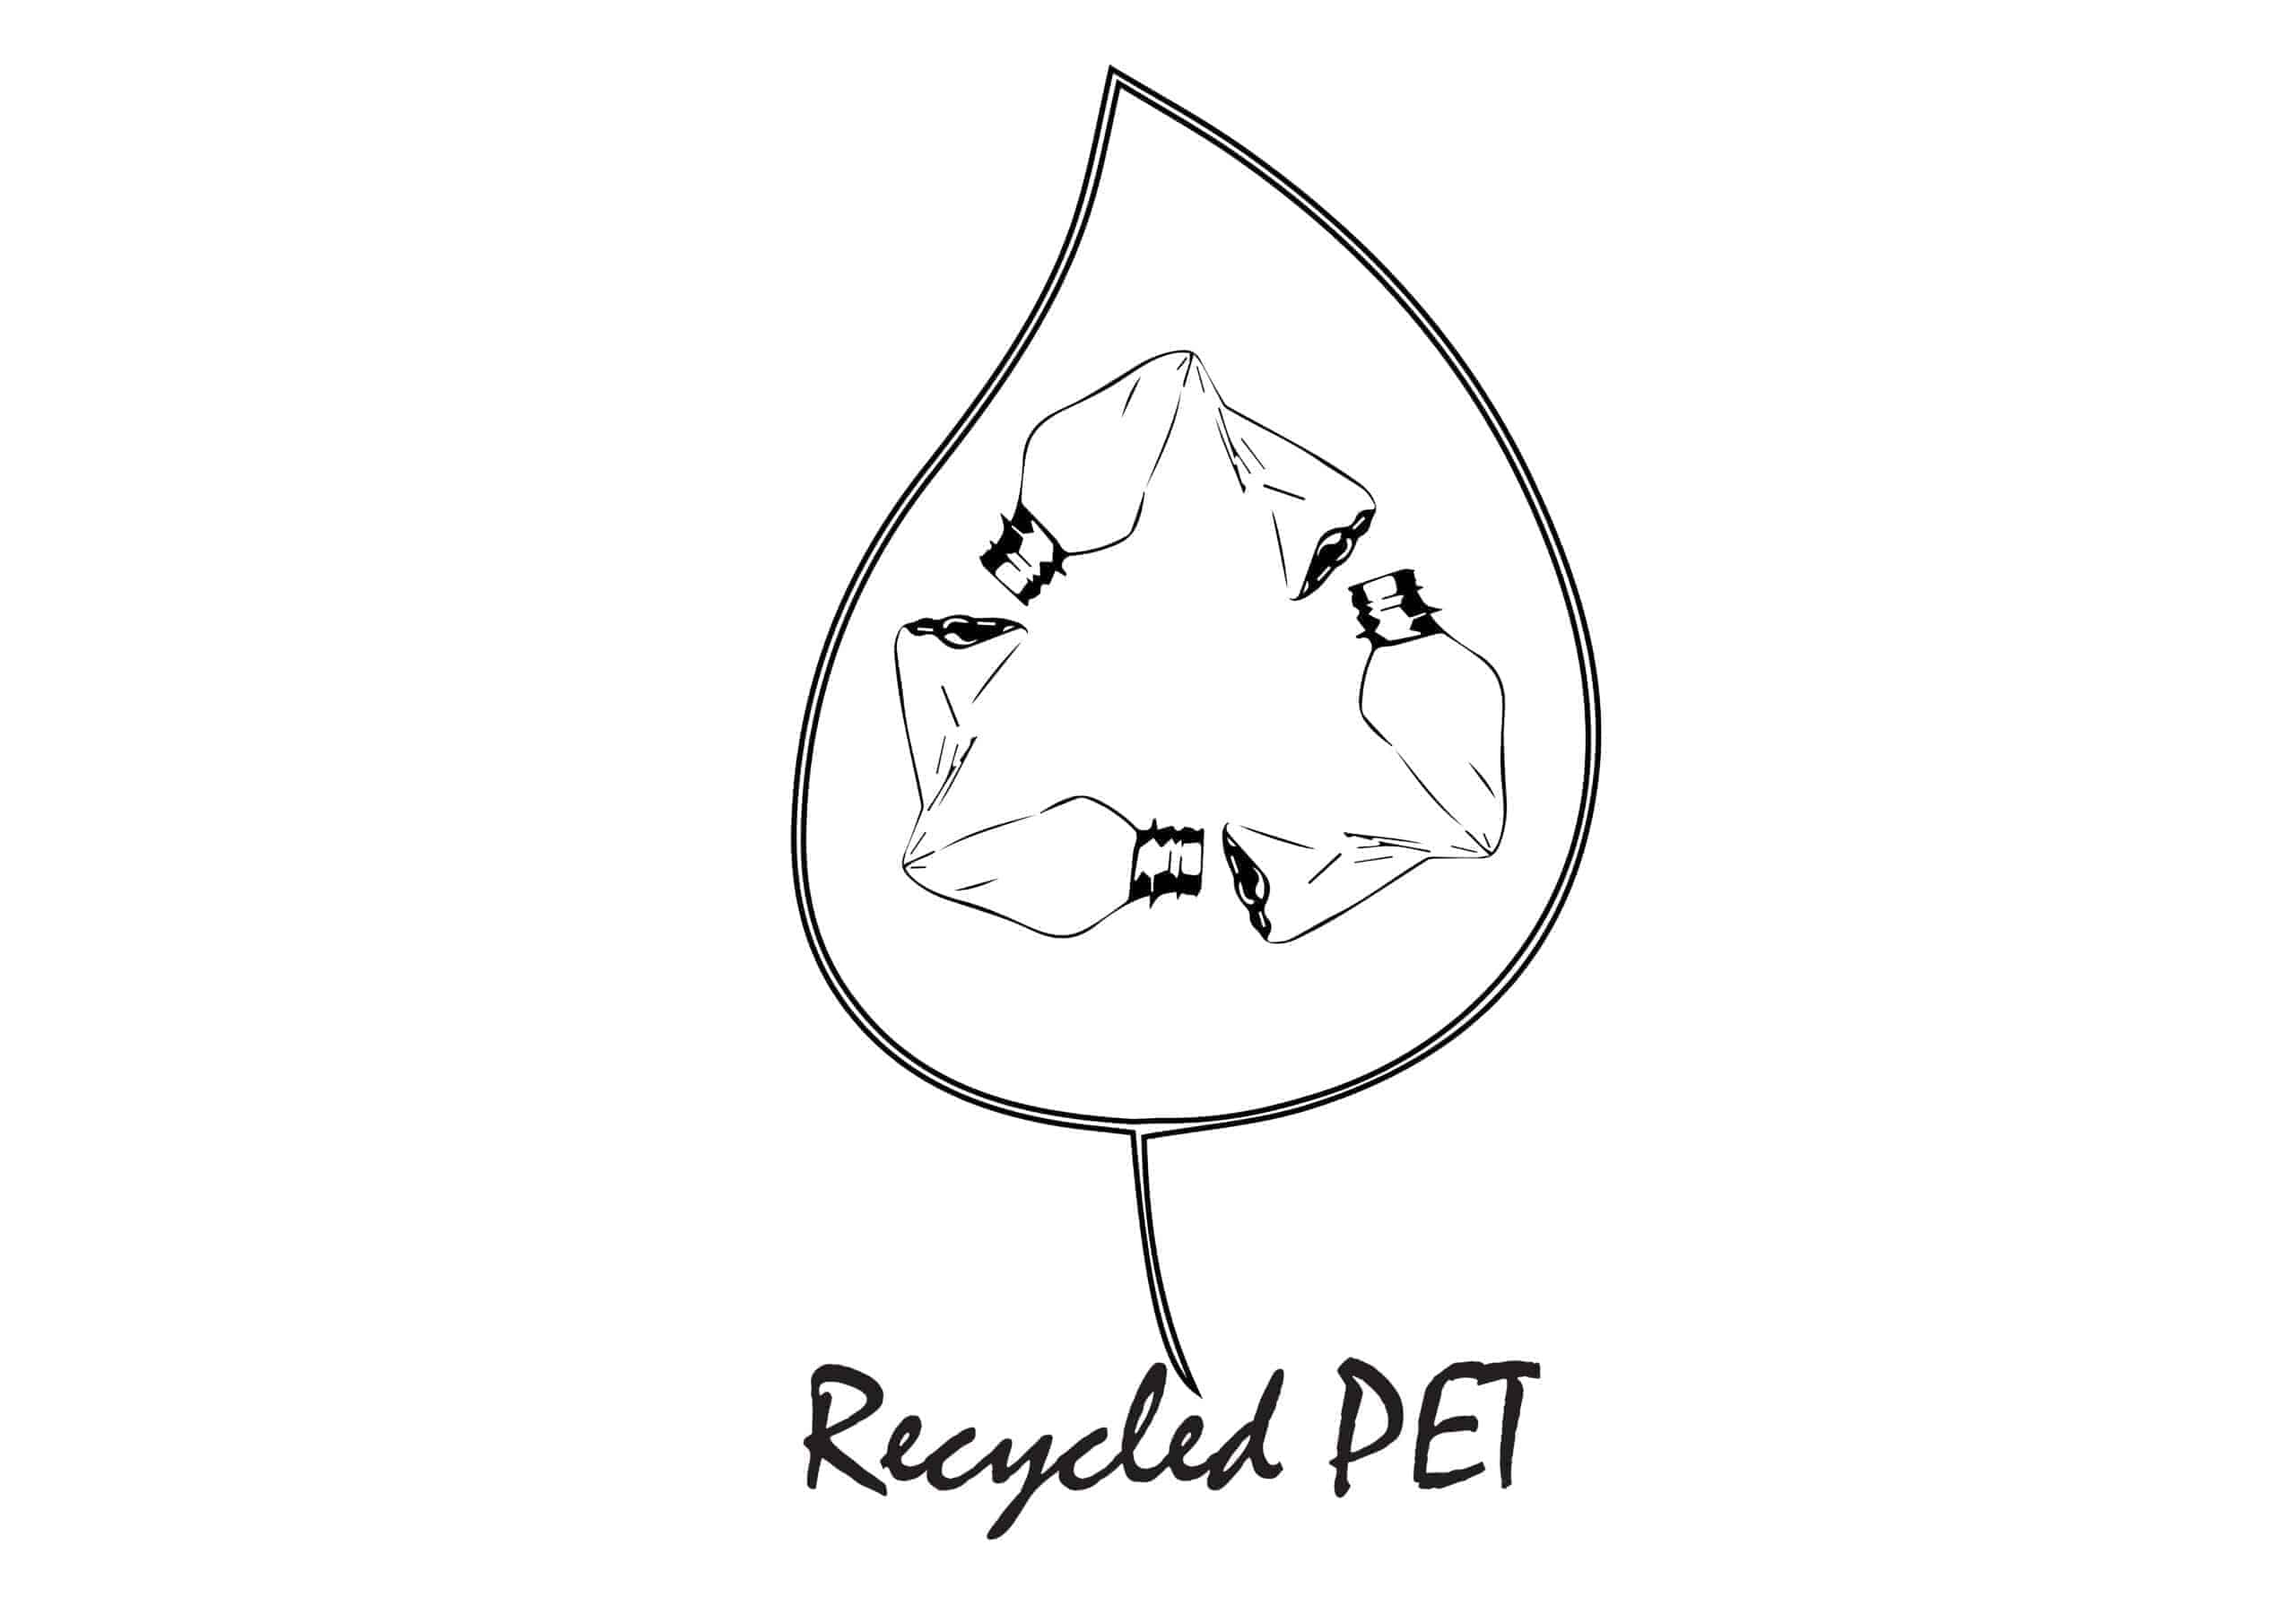 recycled pet